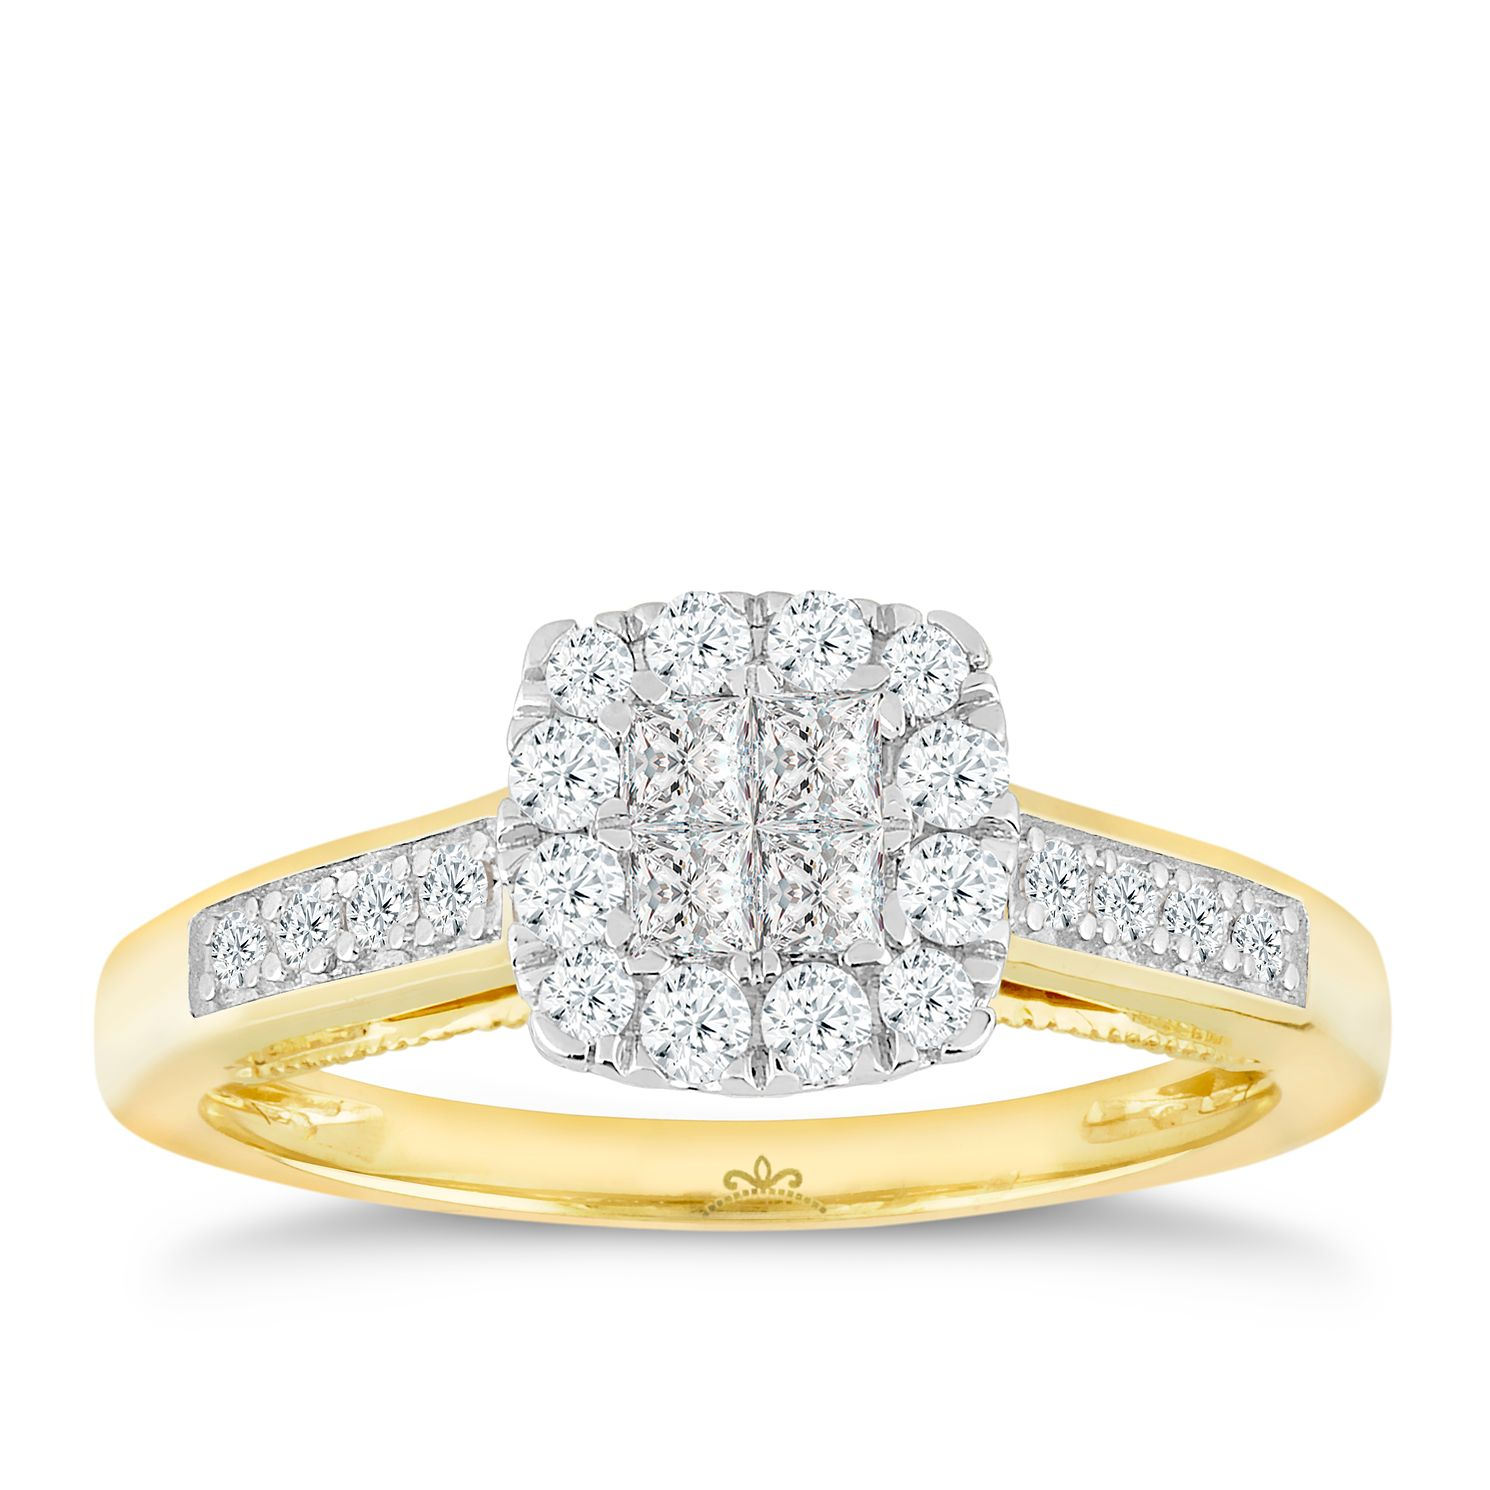 Princessa 18ct Yellow Gold 1/2ct Diamond Cluster Ring - Product number 5263042